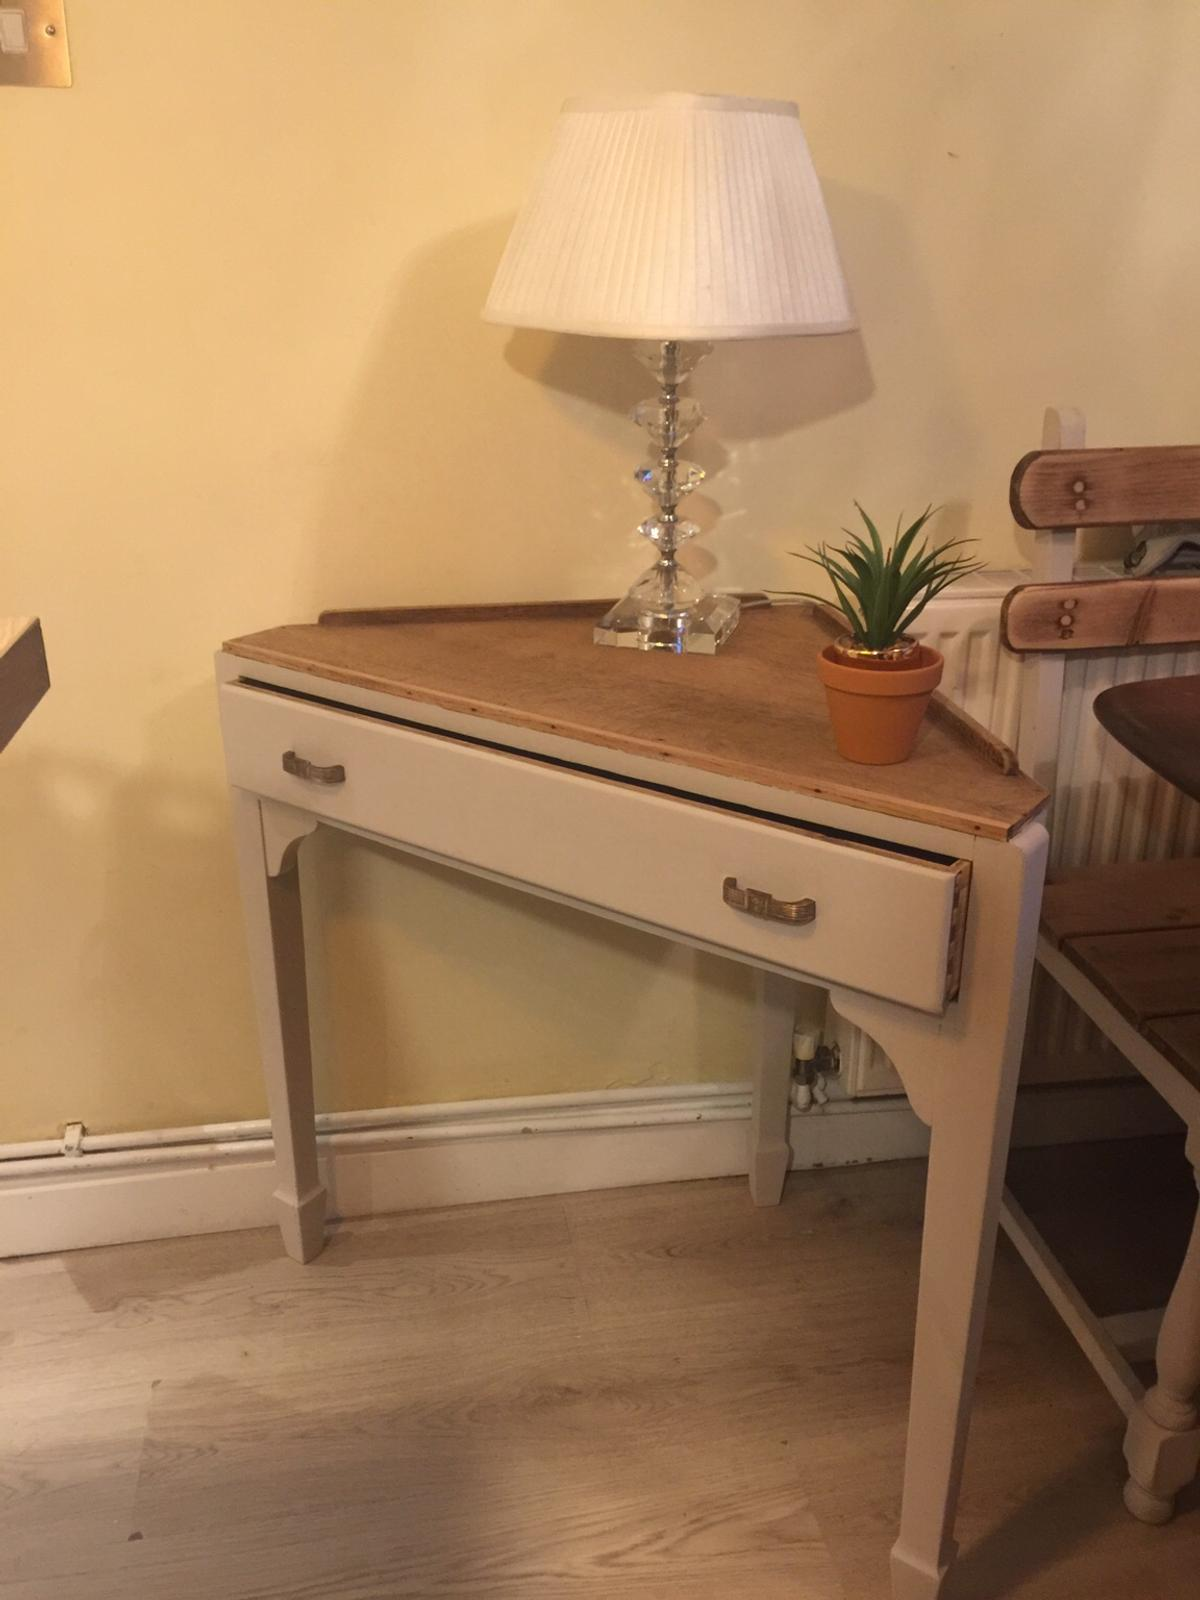 Sideboard £125, corner table £50, vintage school desk £30, table and chairs £225